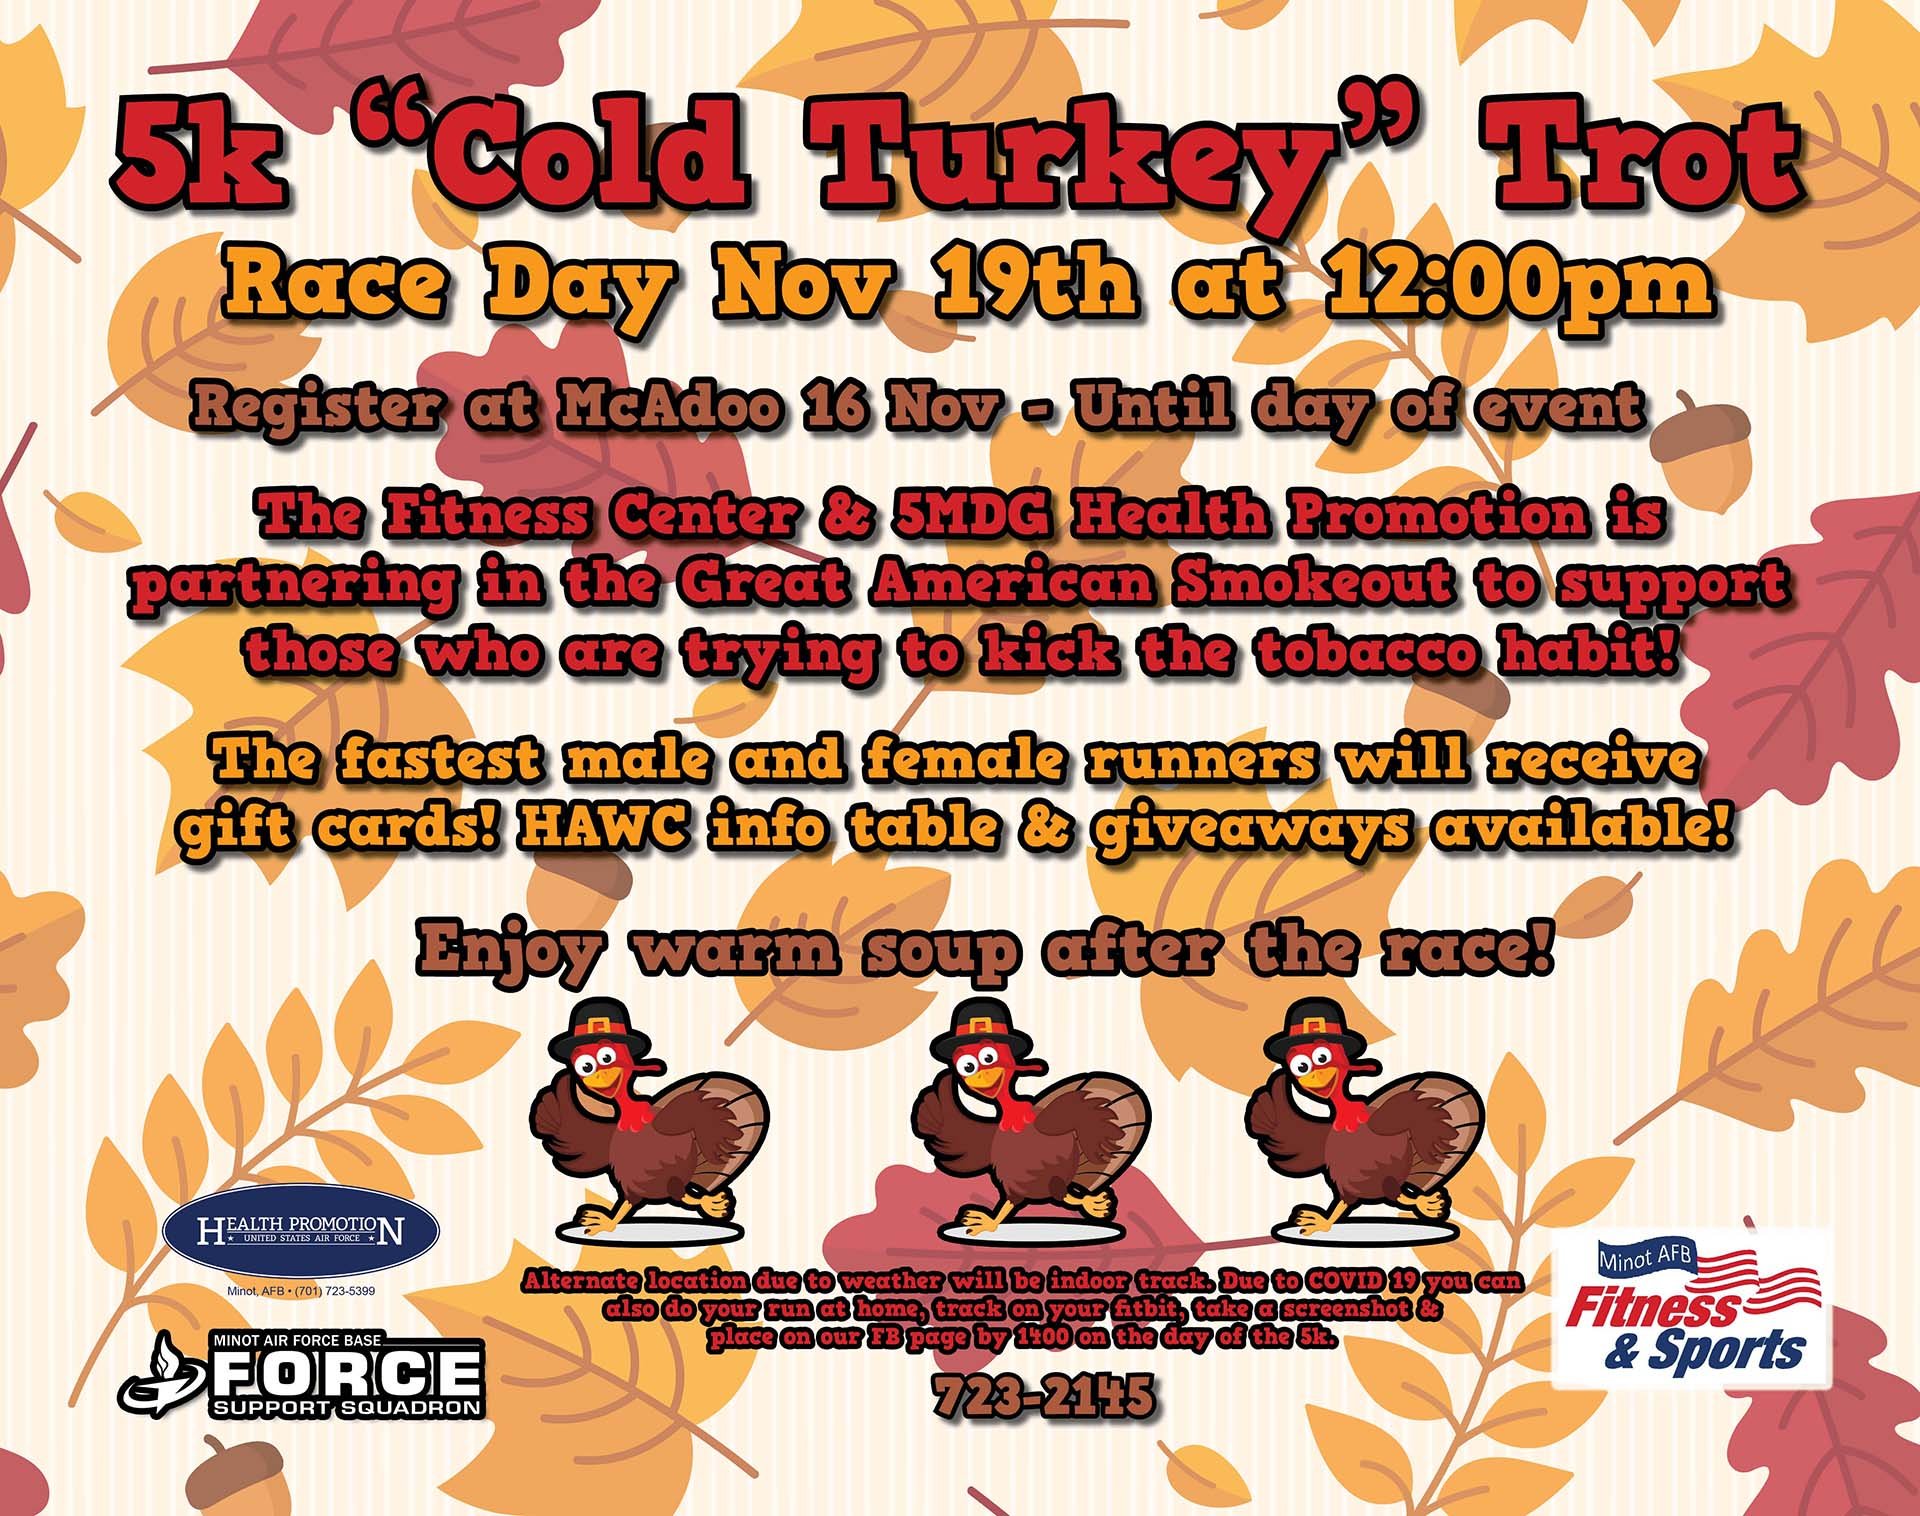 5K Cold Turkey Trot (Great American Smoke Out)